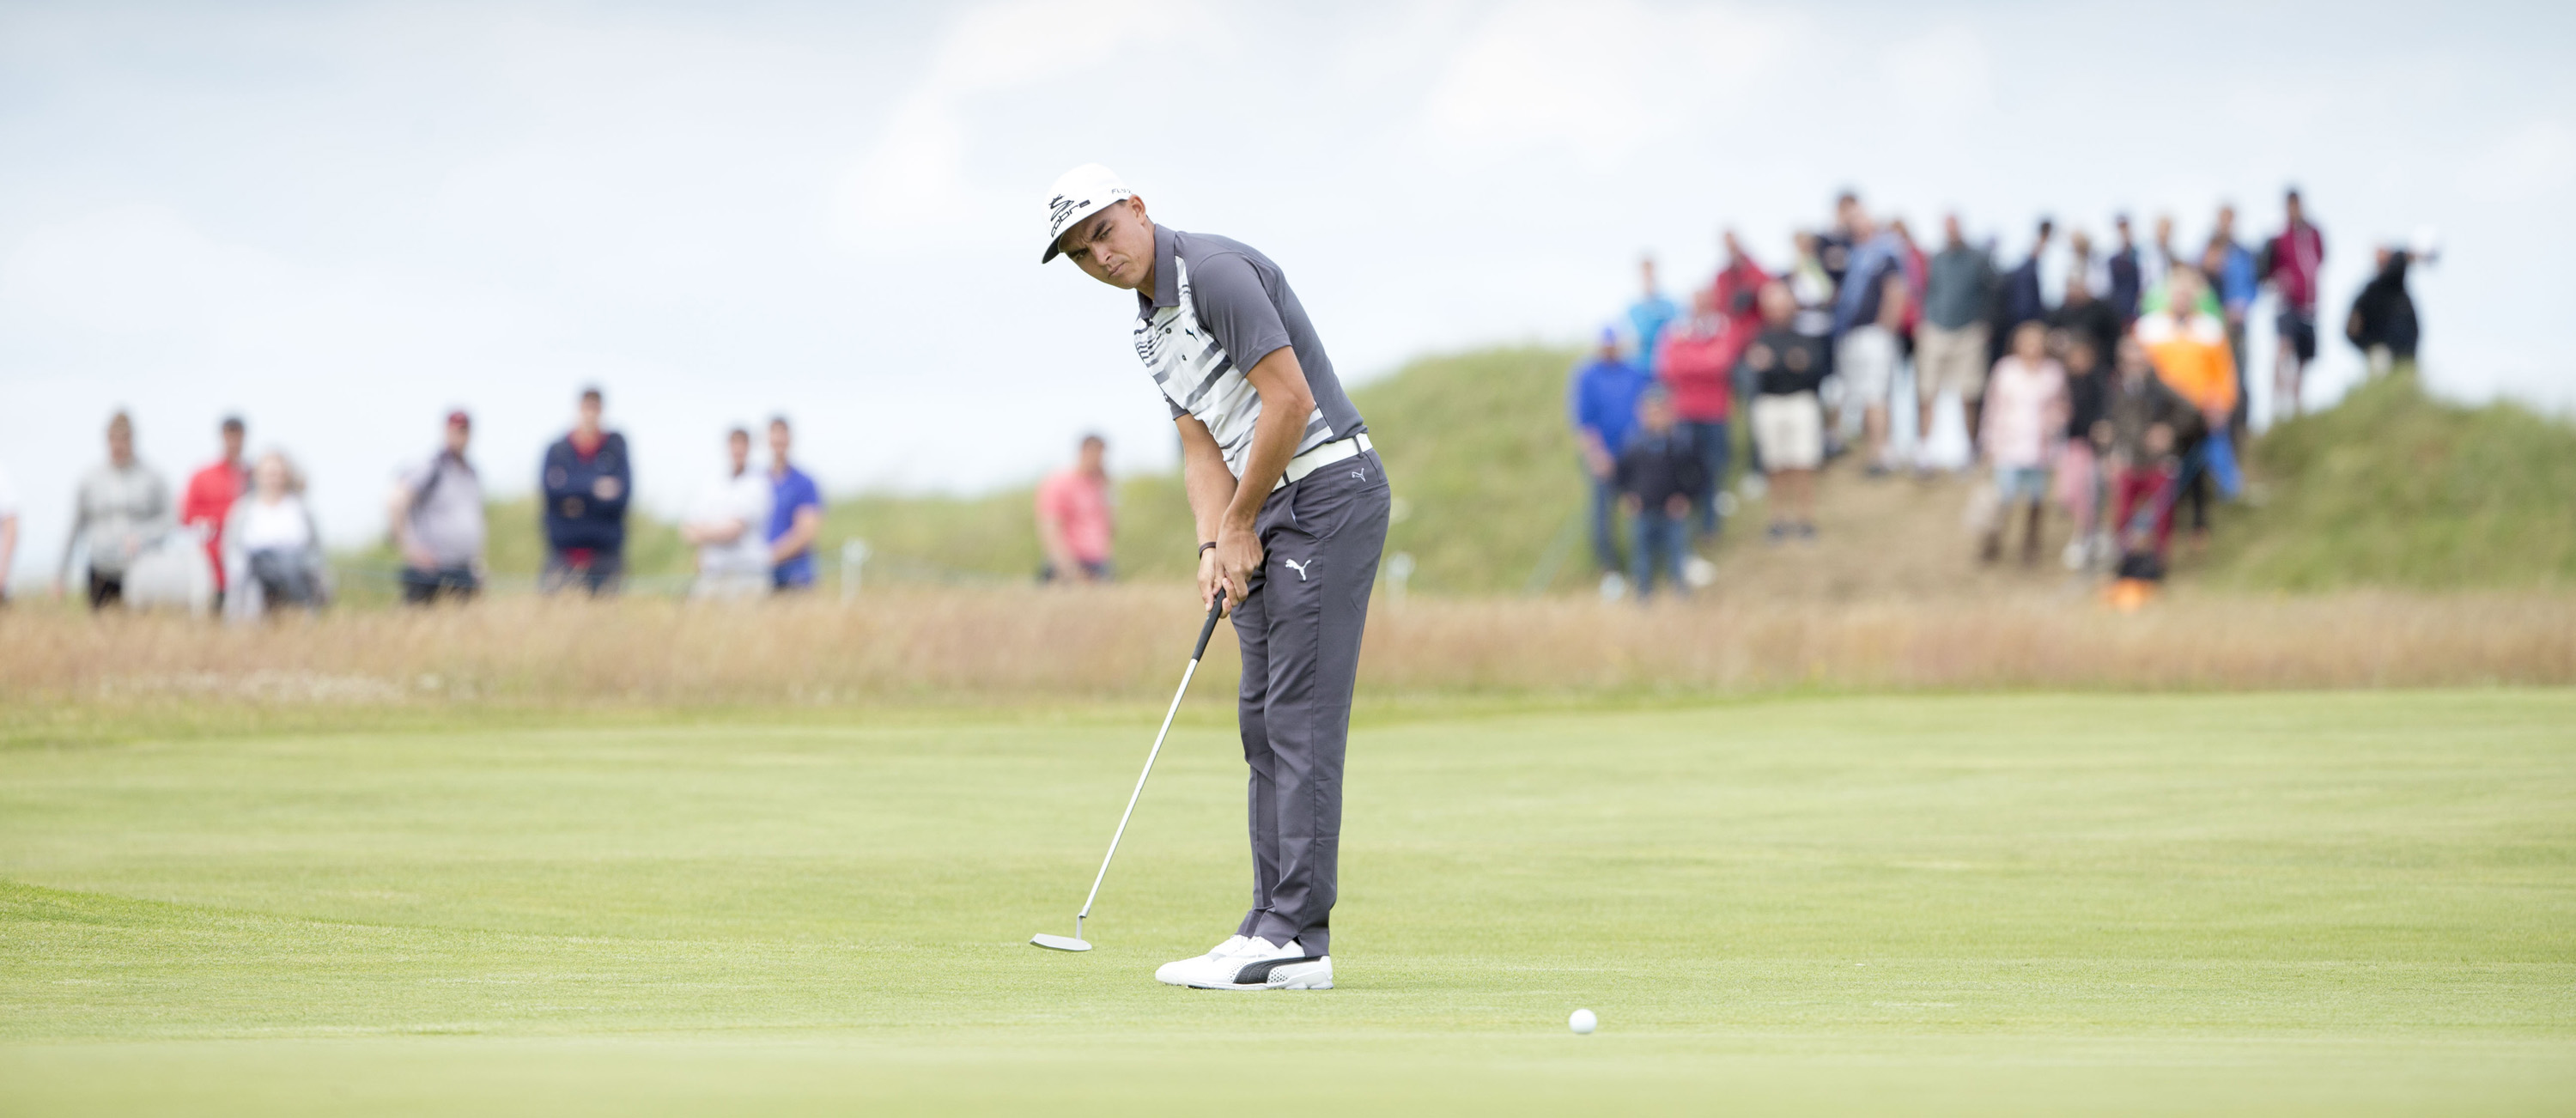 USA's Rickie Fowler putts out at the 9th hole during day three of the Scottish Open at Gullane Golf Club, Gullane, Scotland  Saturday July 11, 2015.  (Kenny Smith/PA via AP) UNITED KINGDOM OUT  NO SALES NO ARCHIVE